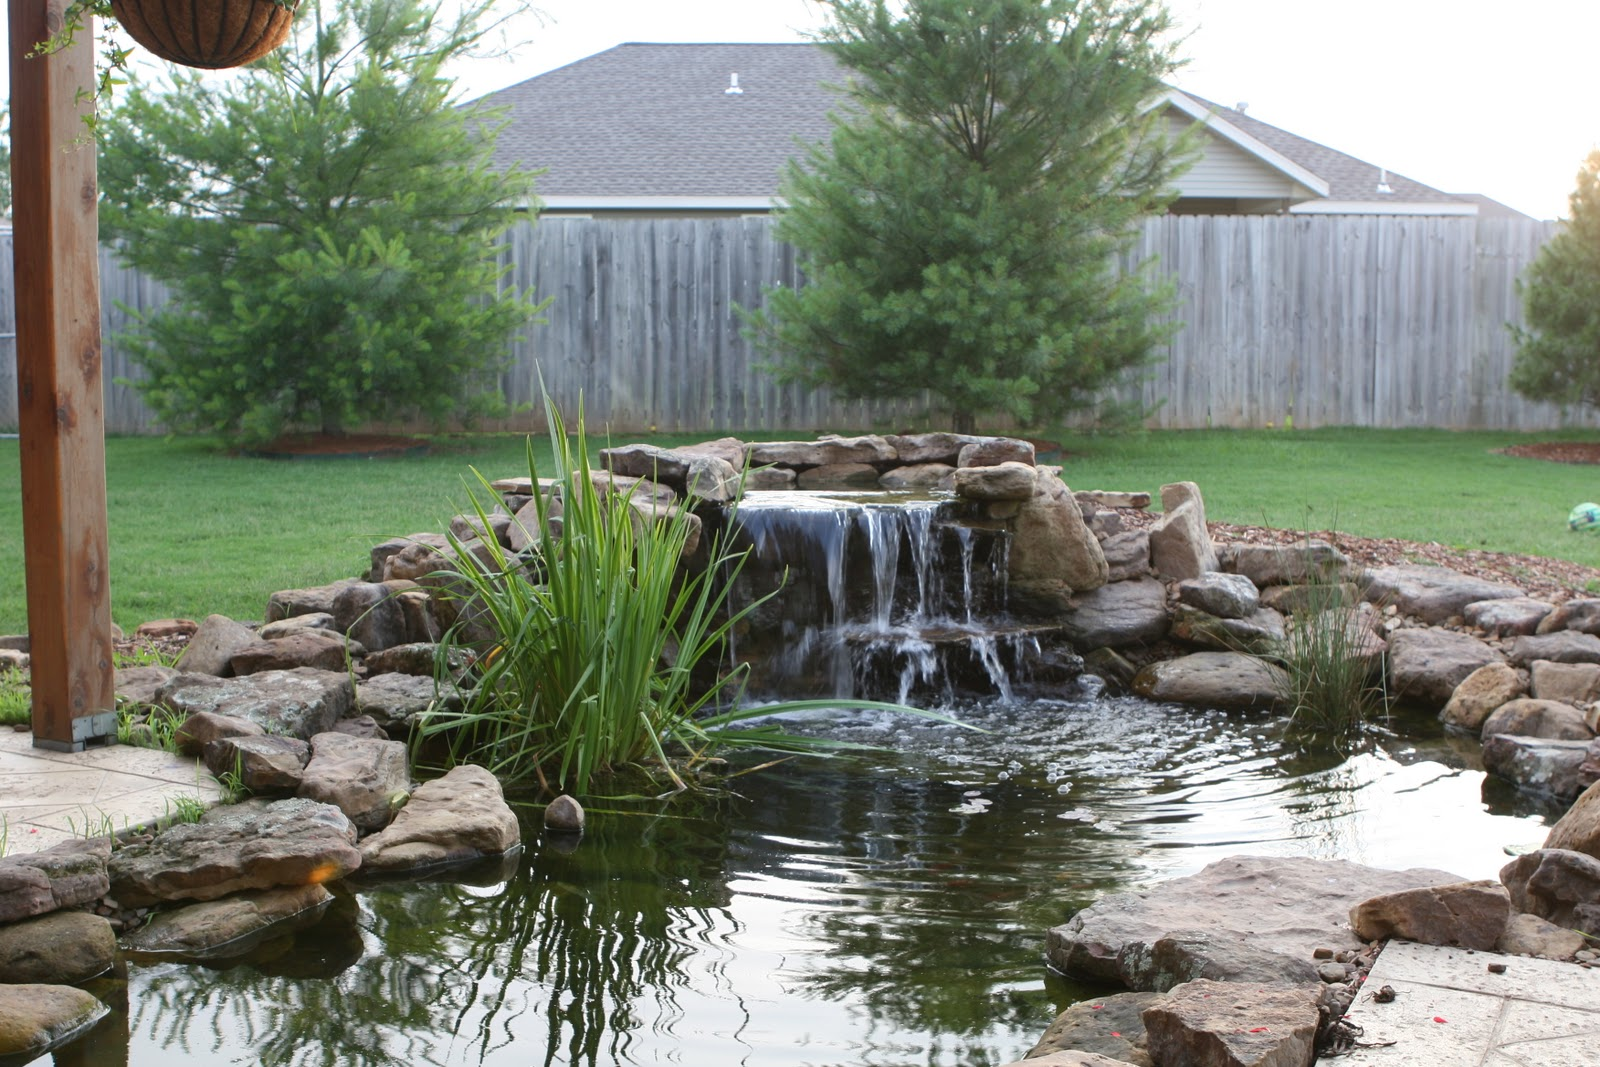 Gilberts: 2501 NW 6th Street, Bentonville on Small Pond Waterfall Ideas id=15911